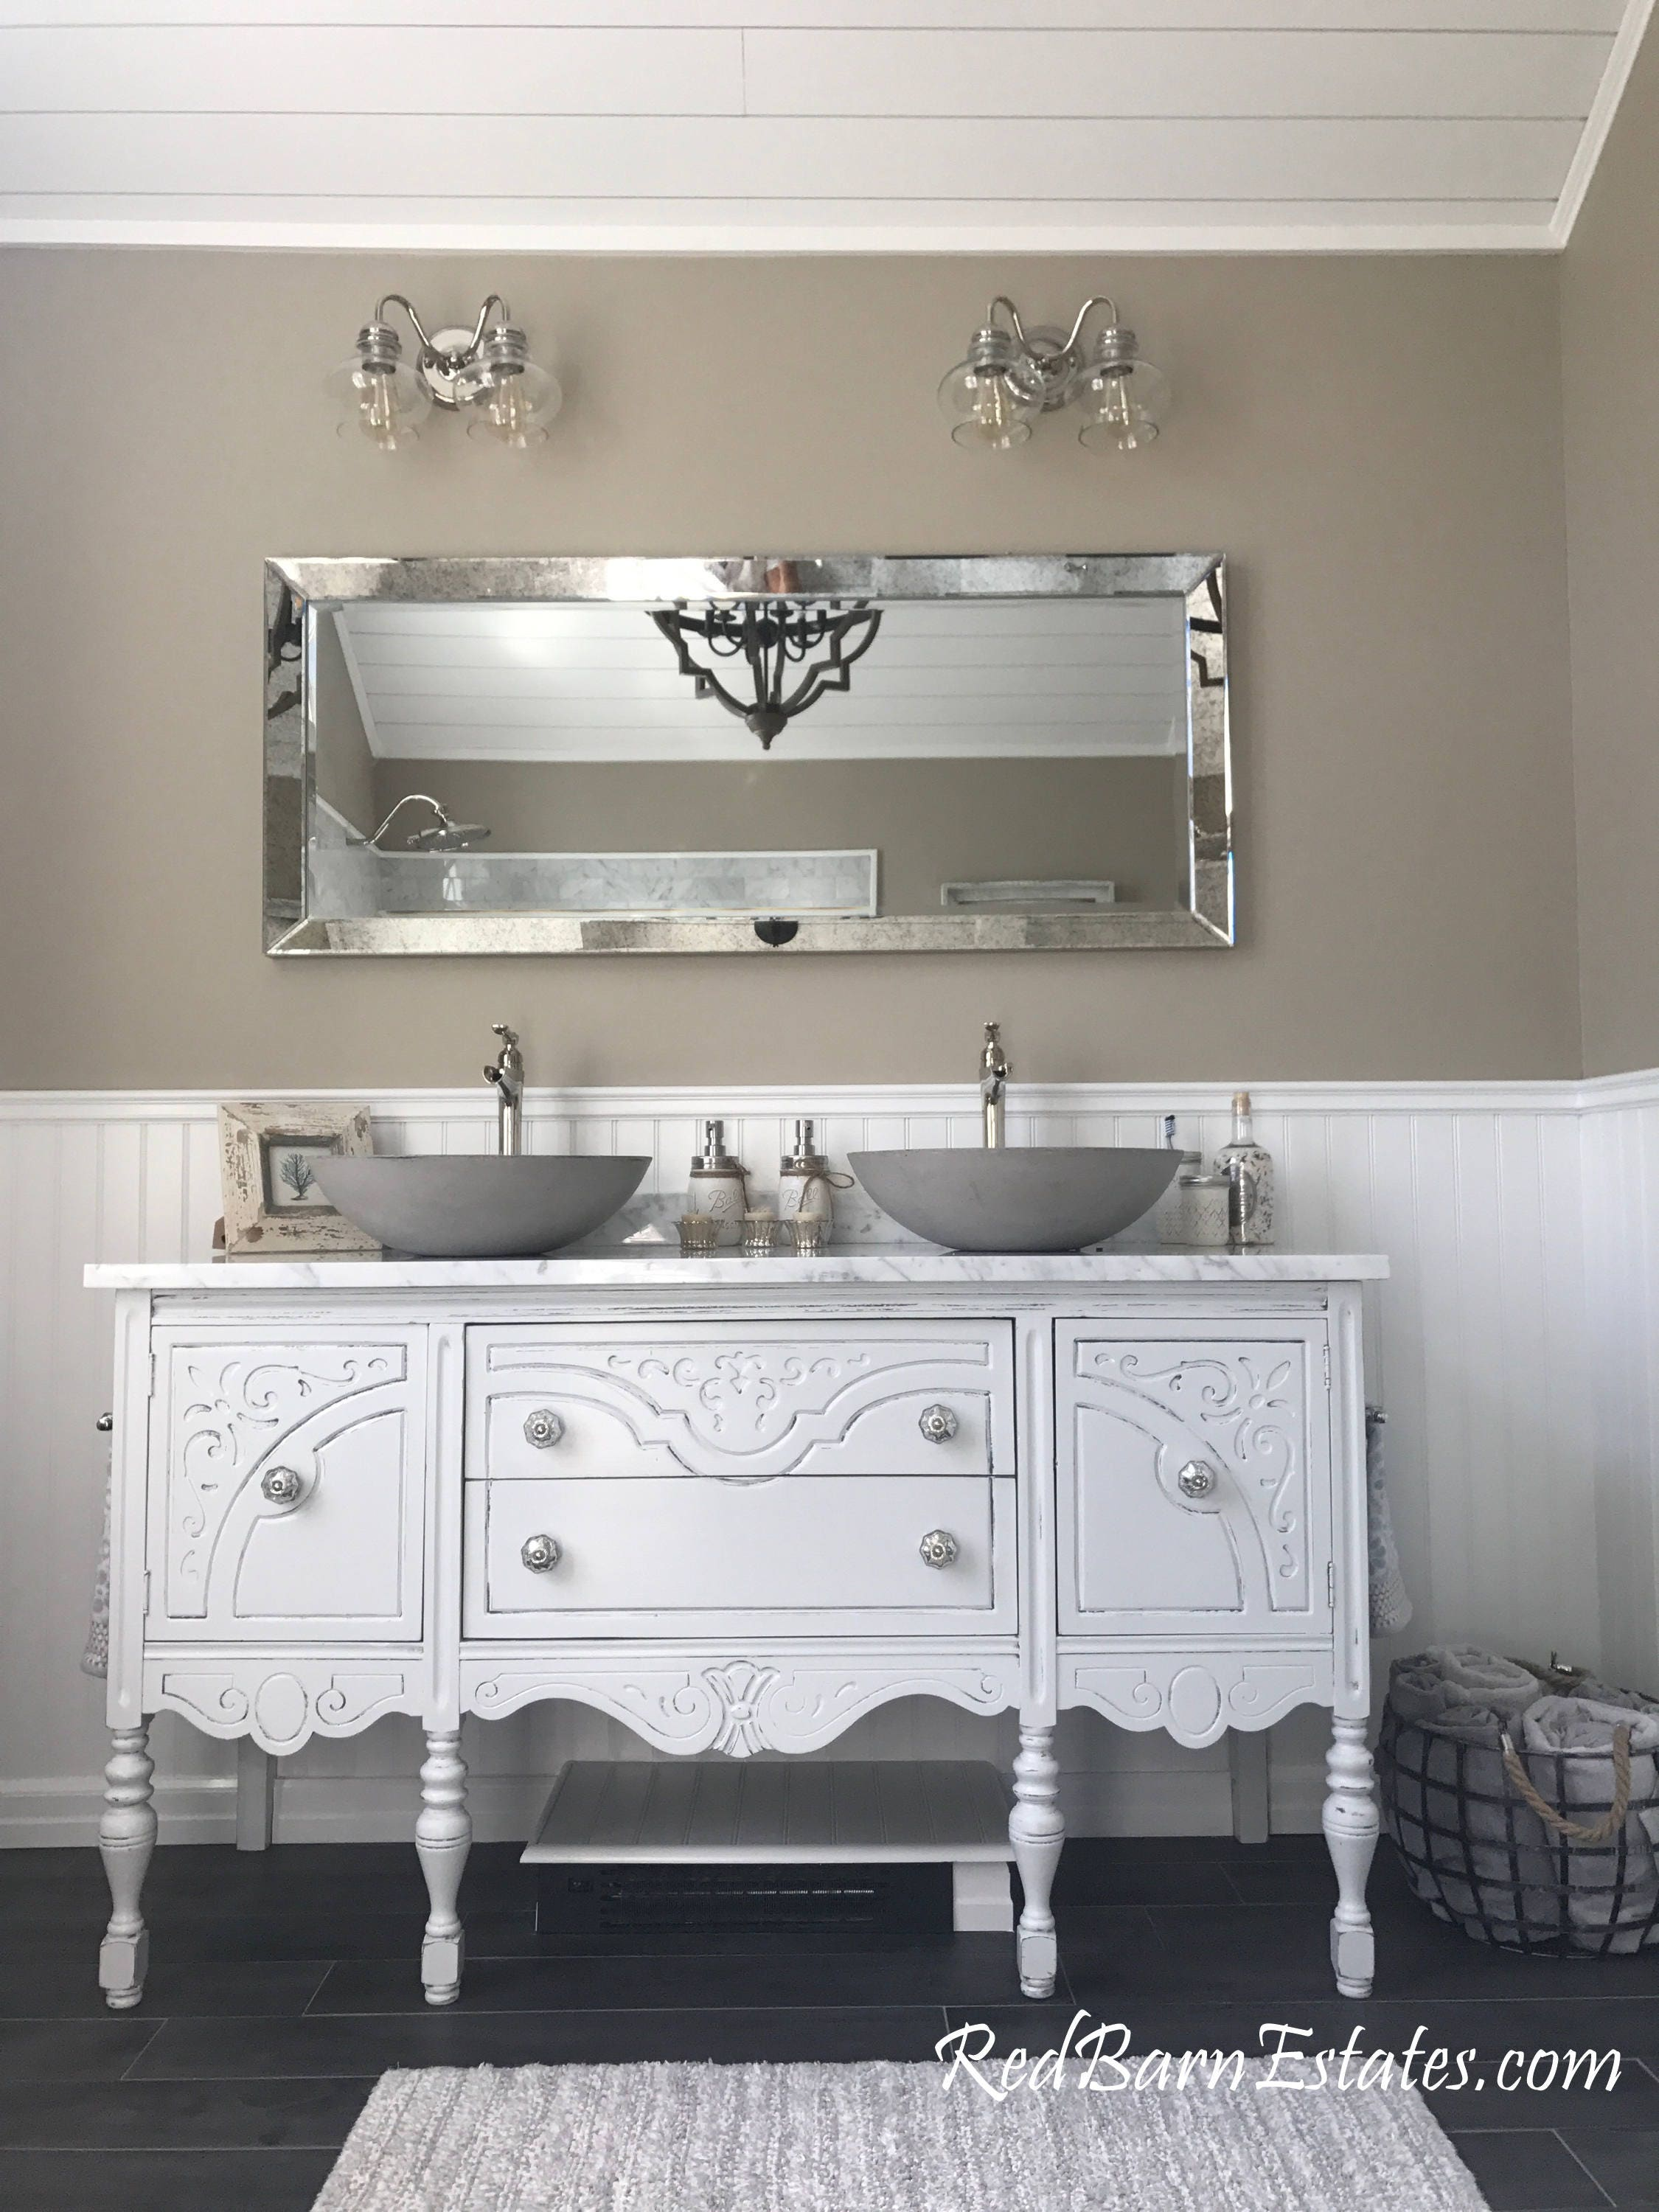 Bathroom Vanity For Double Or Single Sink We Custom Convert From Antique Dresser Shabby Chic